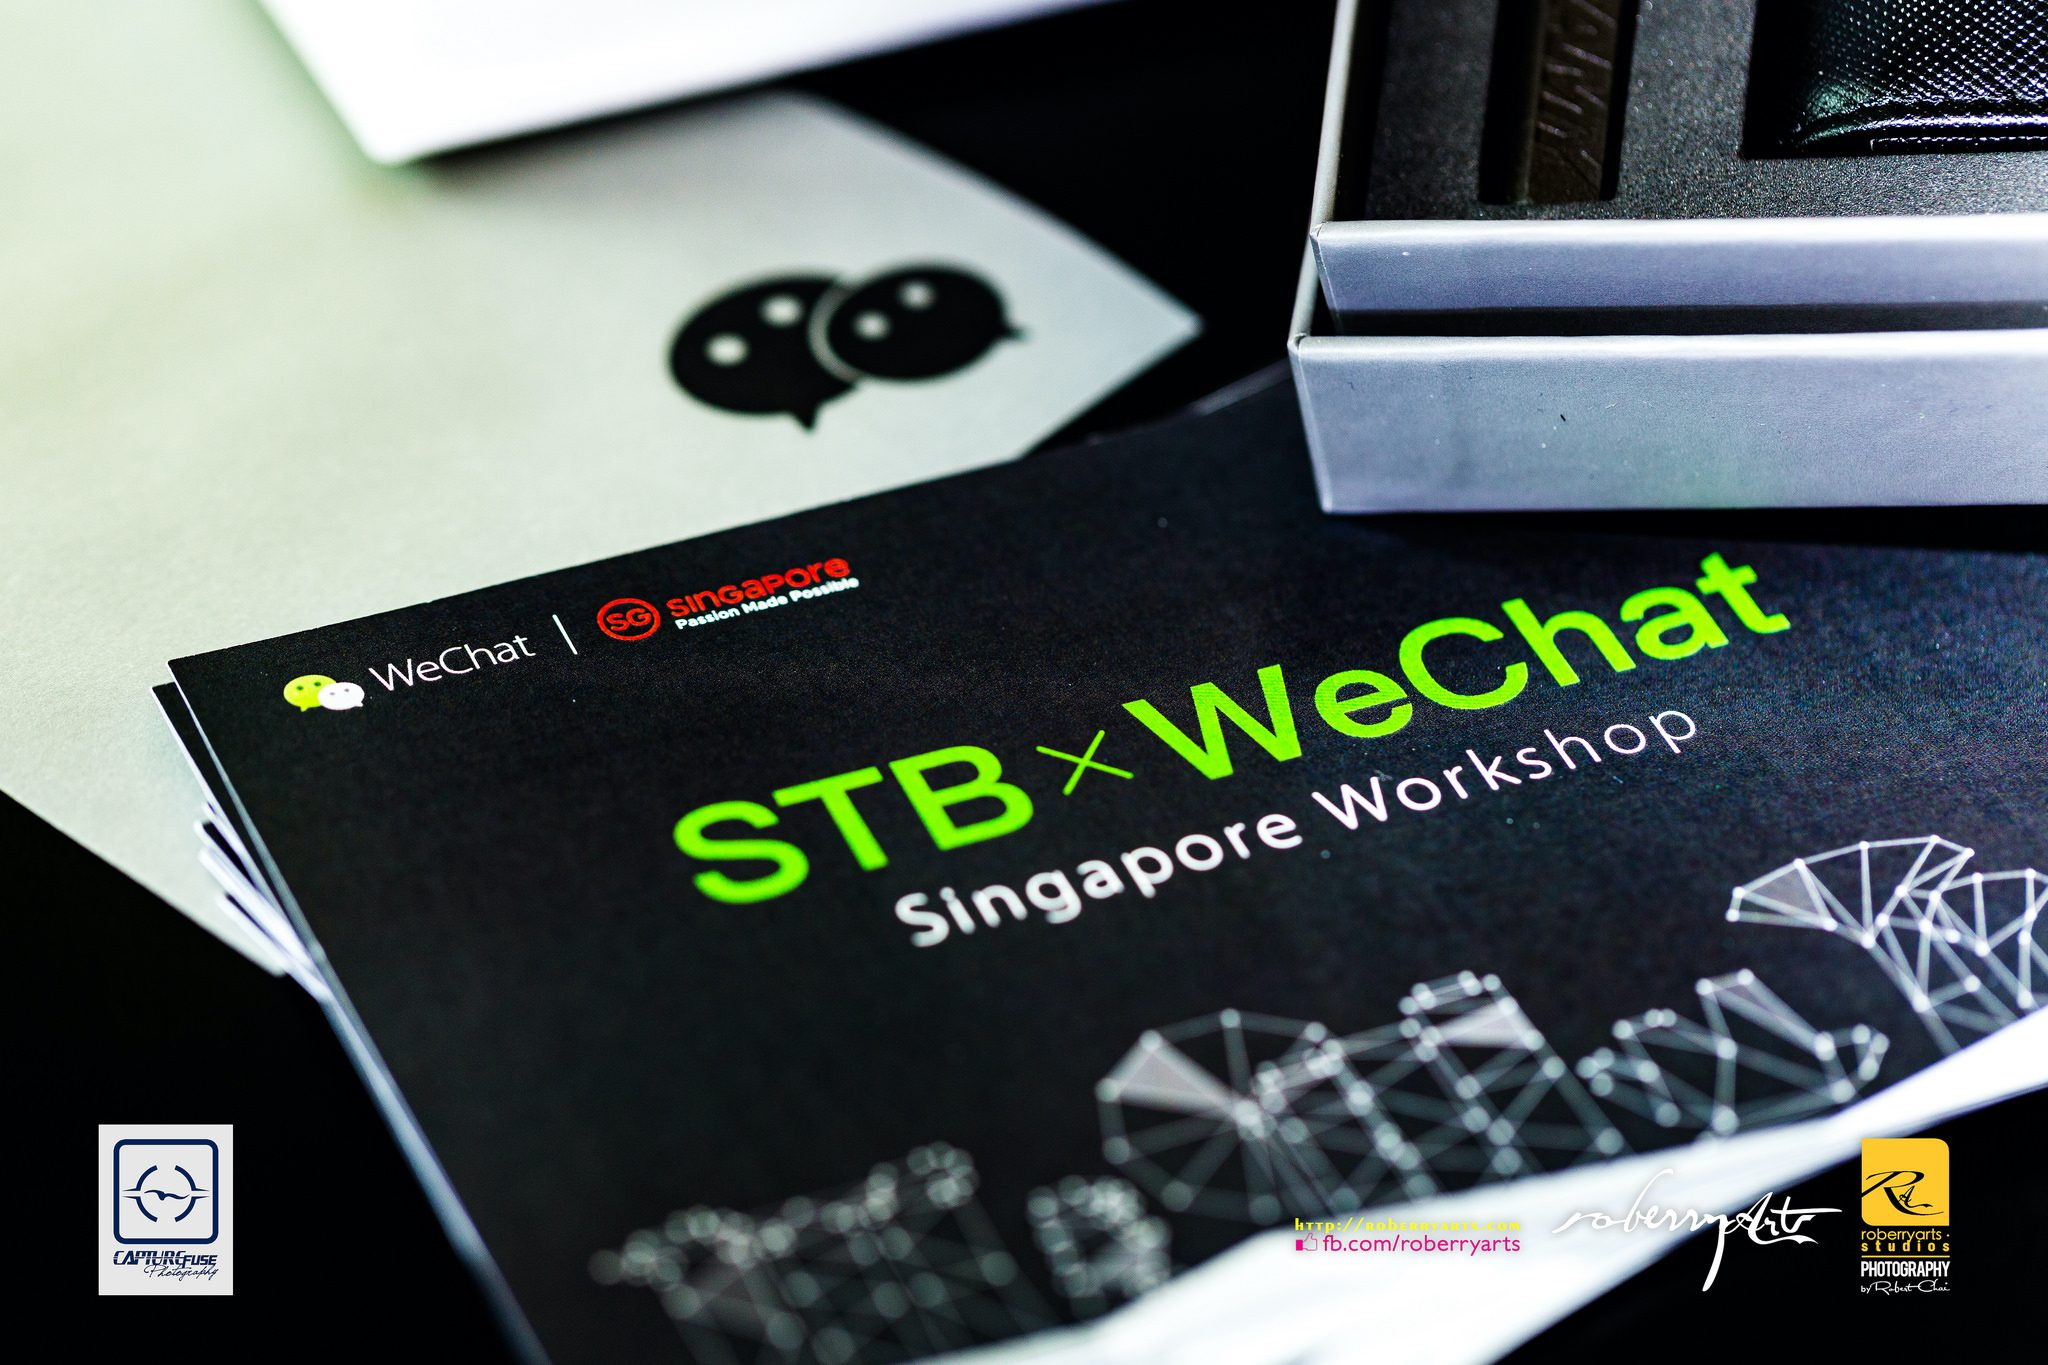 Corporate // Singapore Tourism Board (STB) x WeChat Workshop Sep 2018